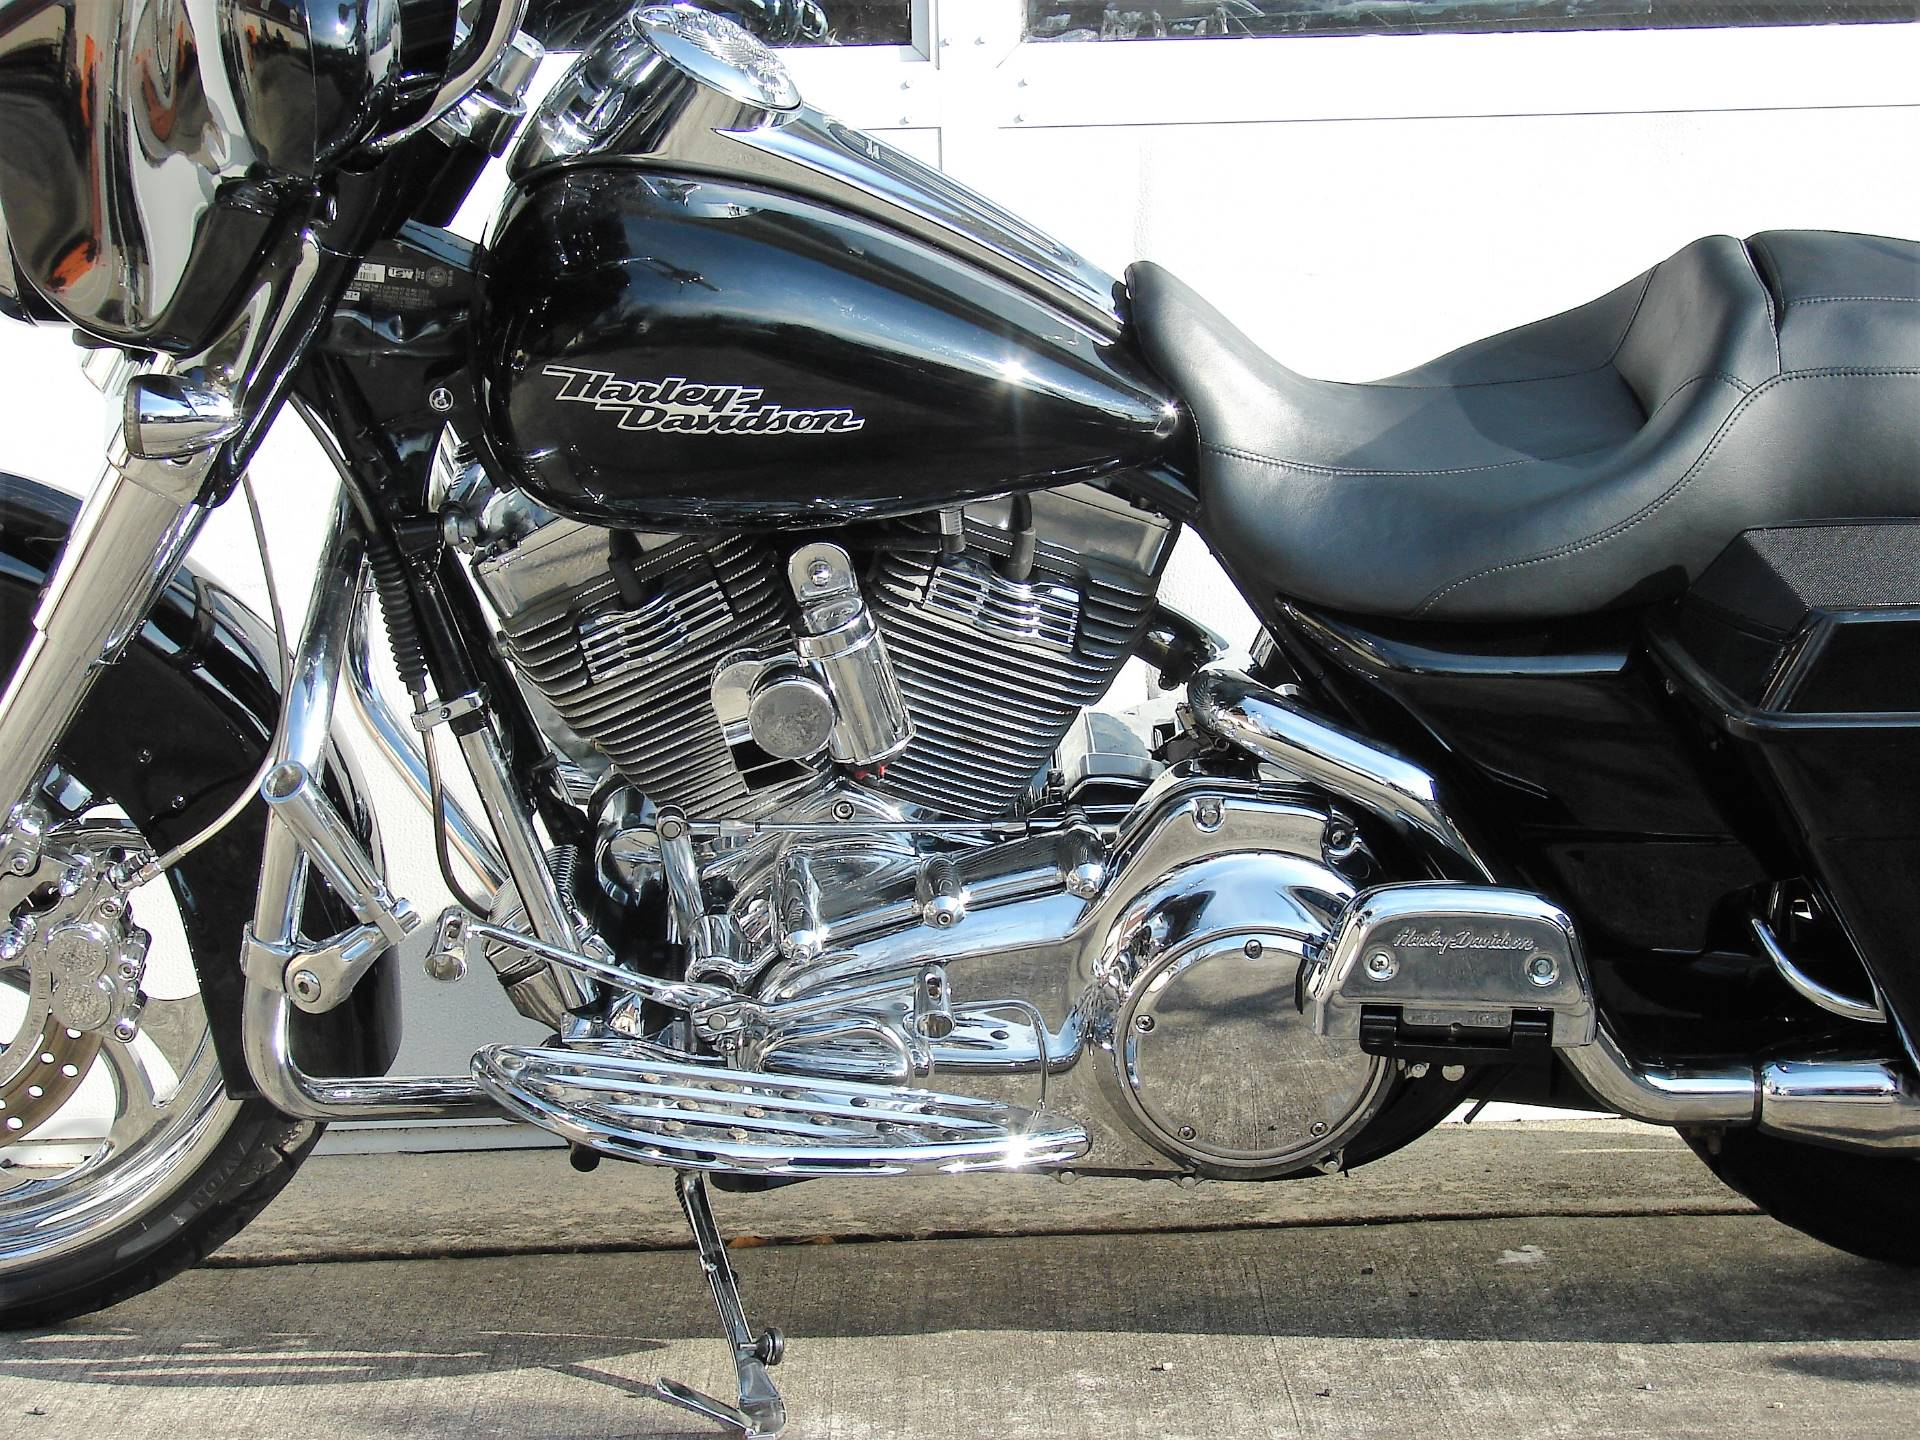 2008 Harley-Davidson FLHX Street Glide in Williamstown, New Jersey - Photo 7